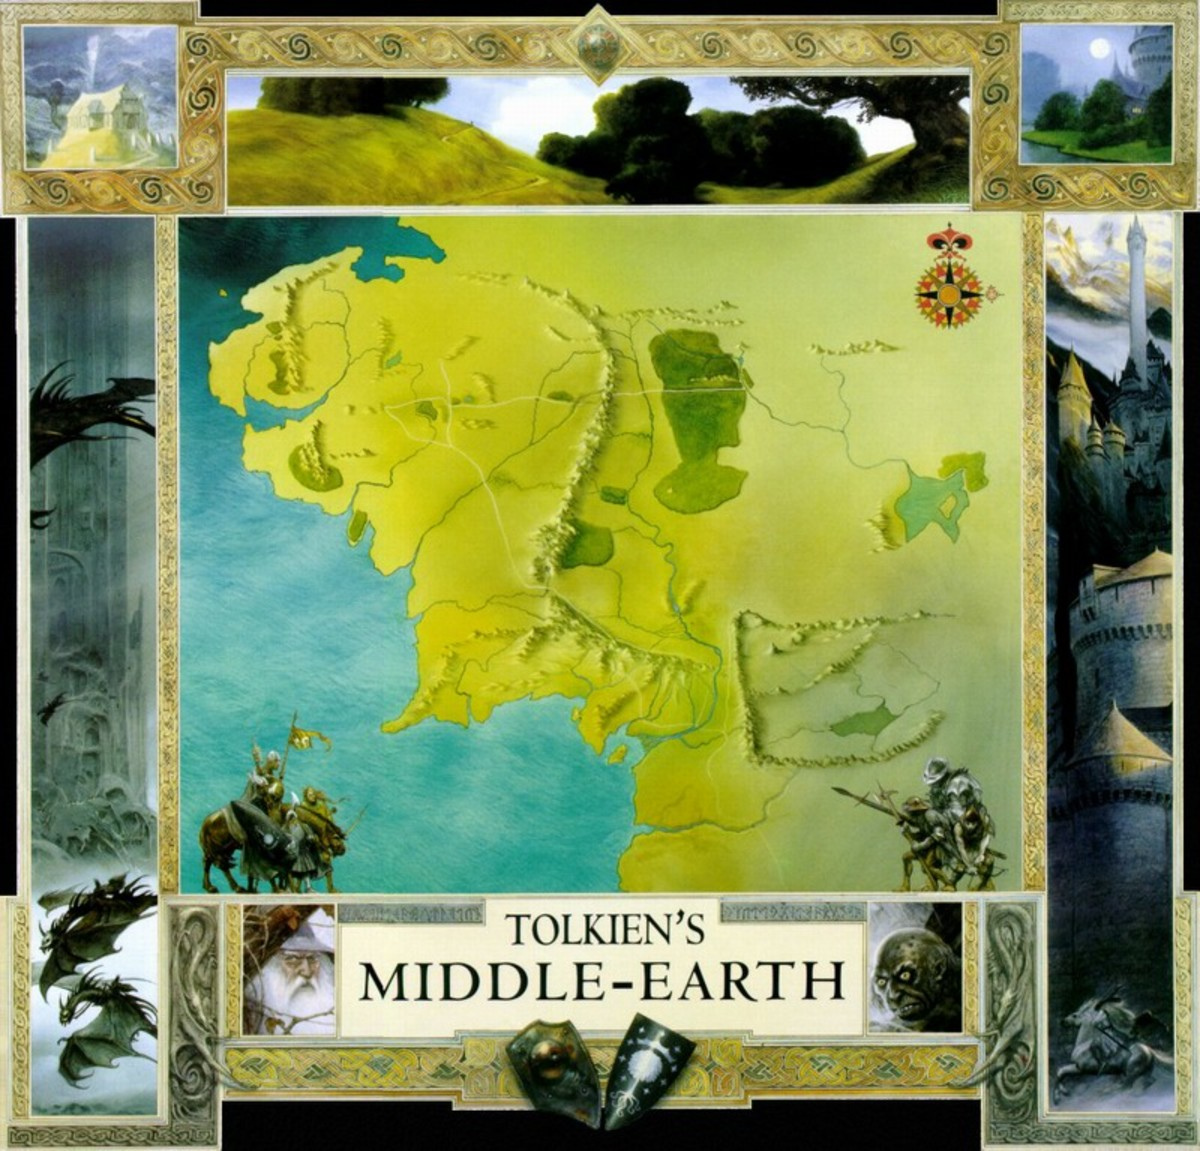 Map of Middle-Earth - art by John Howe